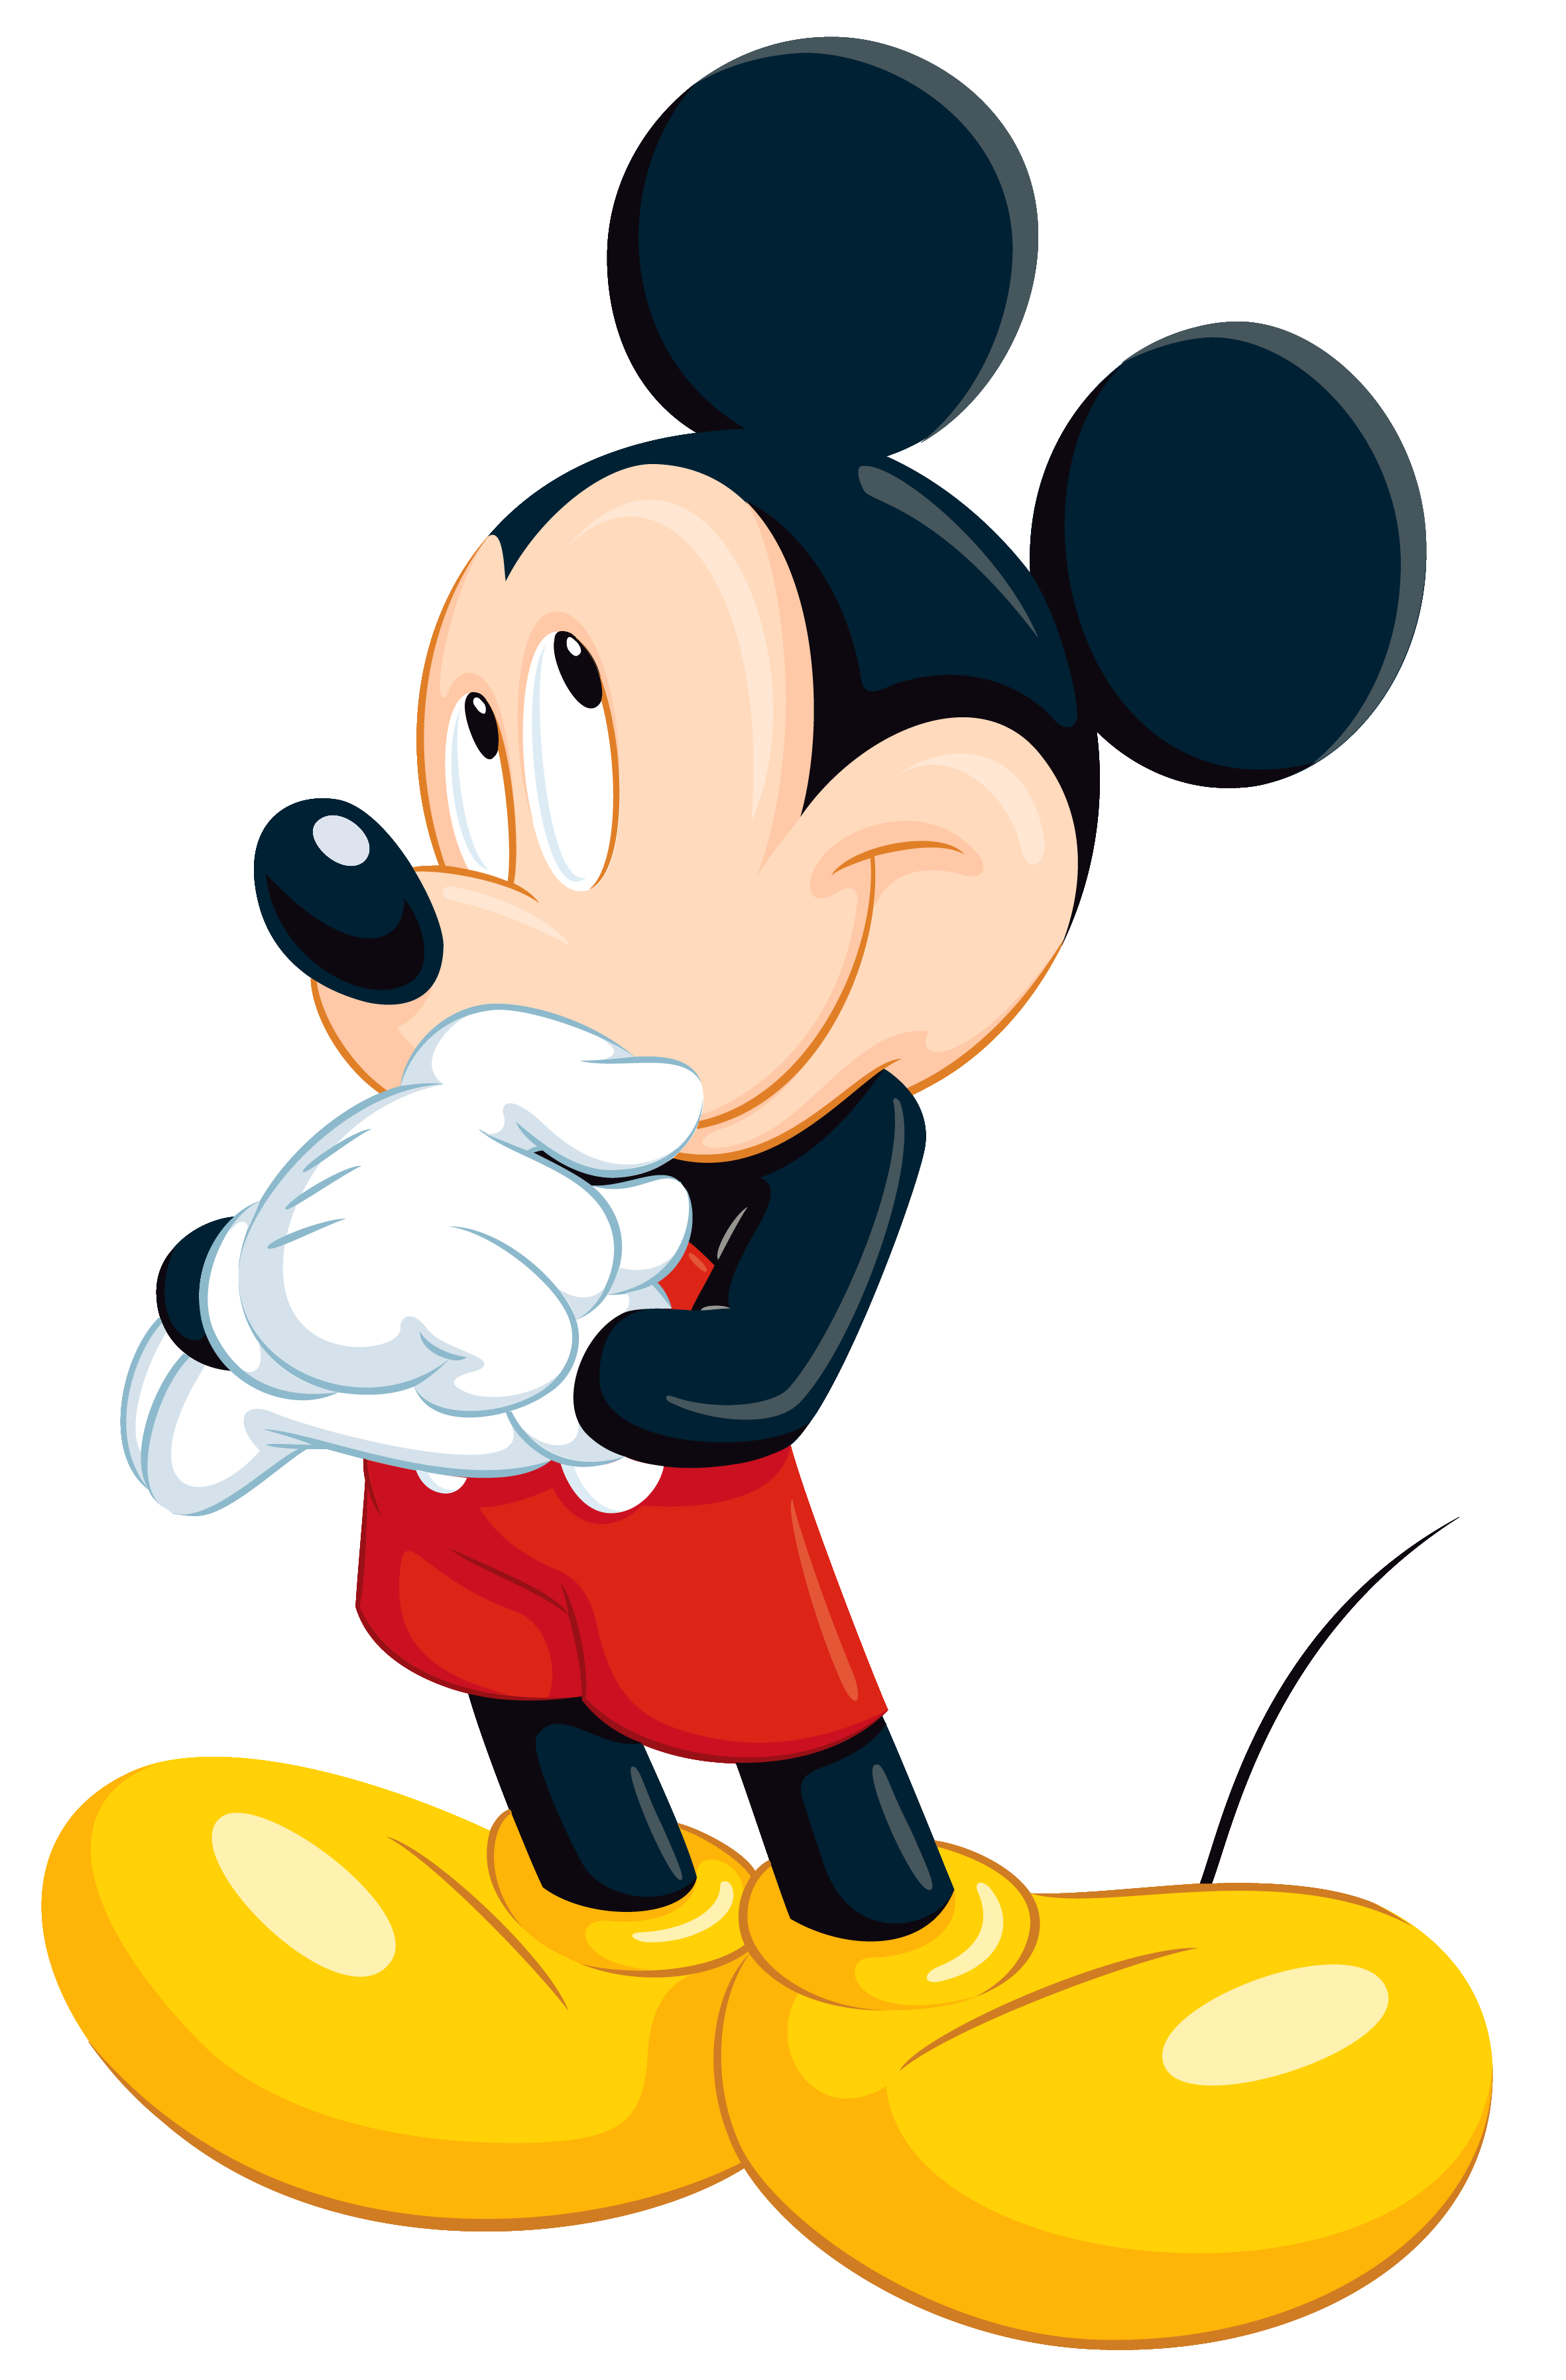 mickey mouse png clipart image mes u00e9s k u00e9pek pinterest cute baby face clipart baby girl face clipart